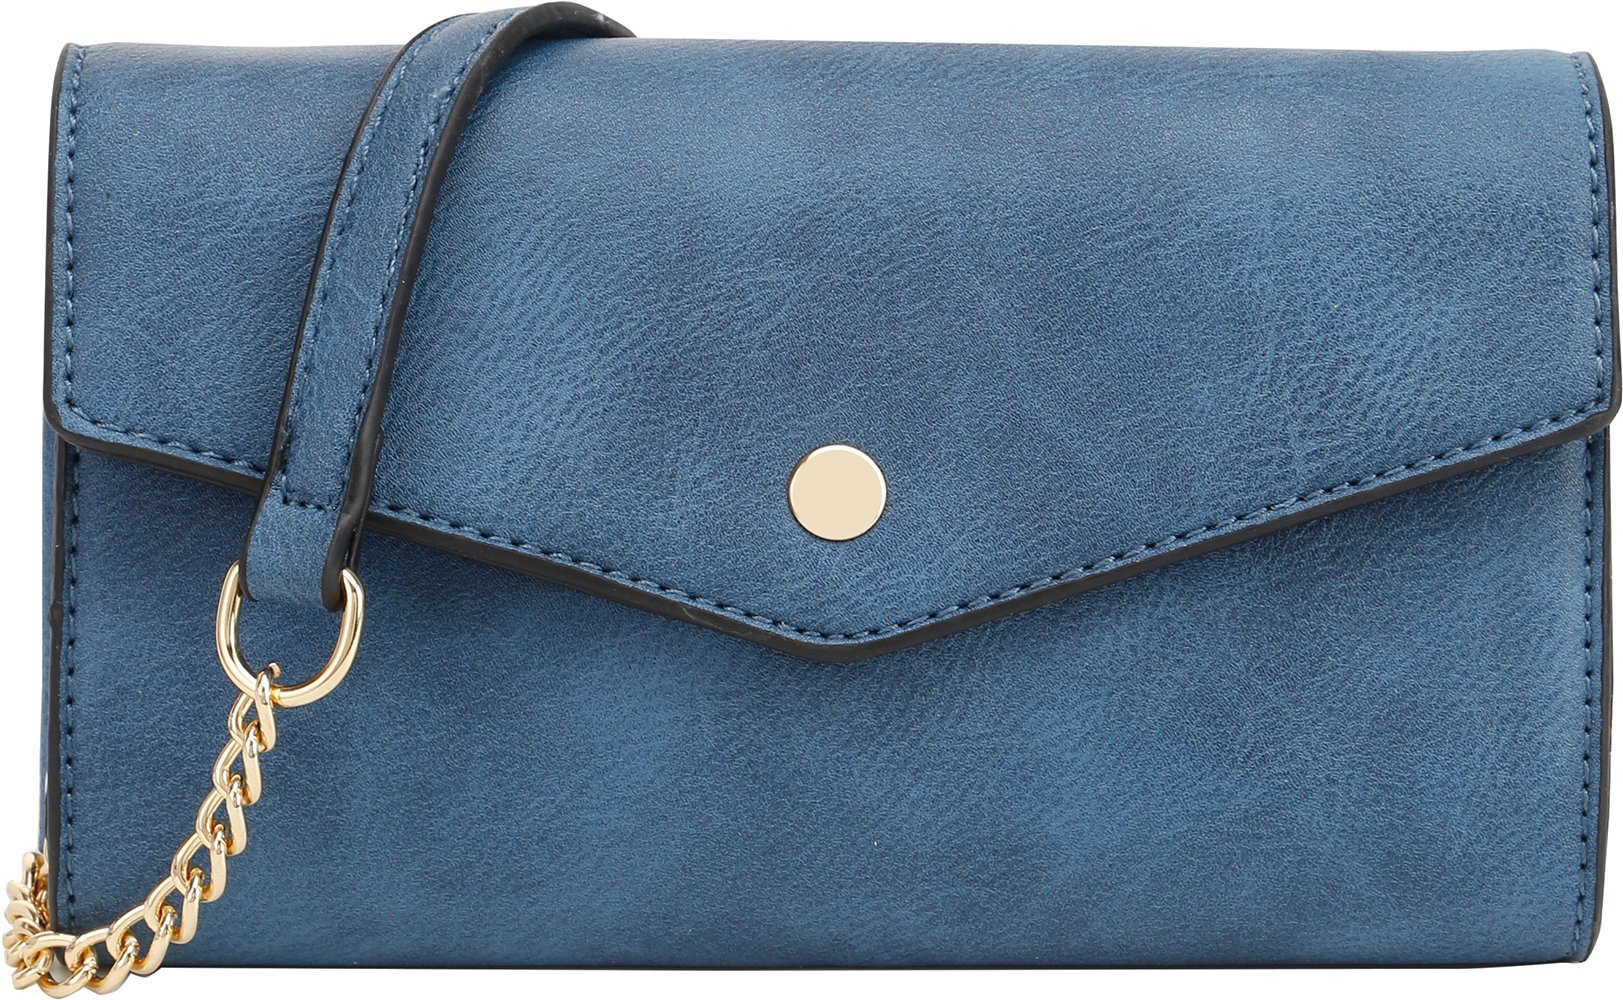 Lily Jane Women's Clutch Crossbody Wallet with Chain Strap (Blue)